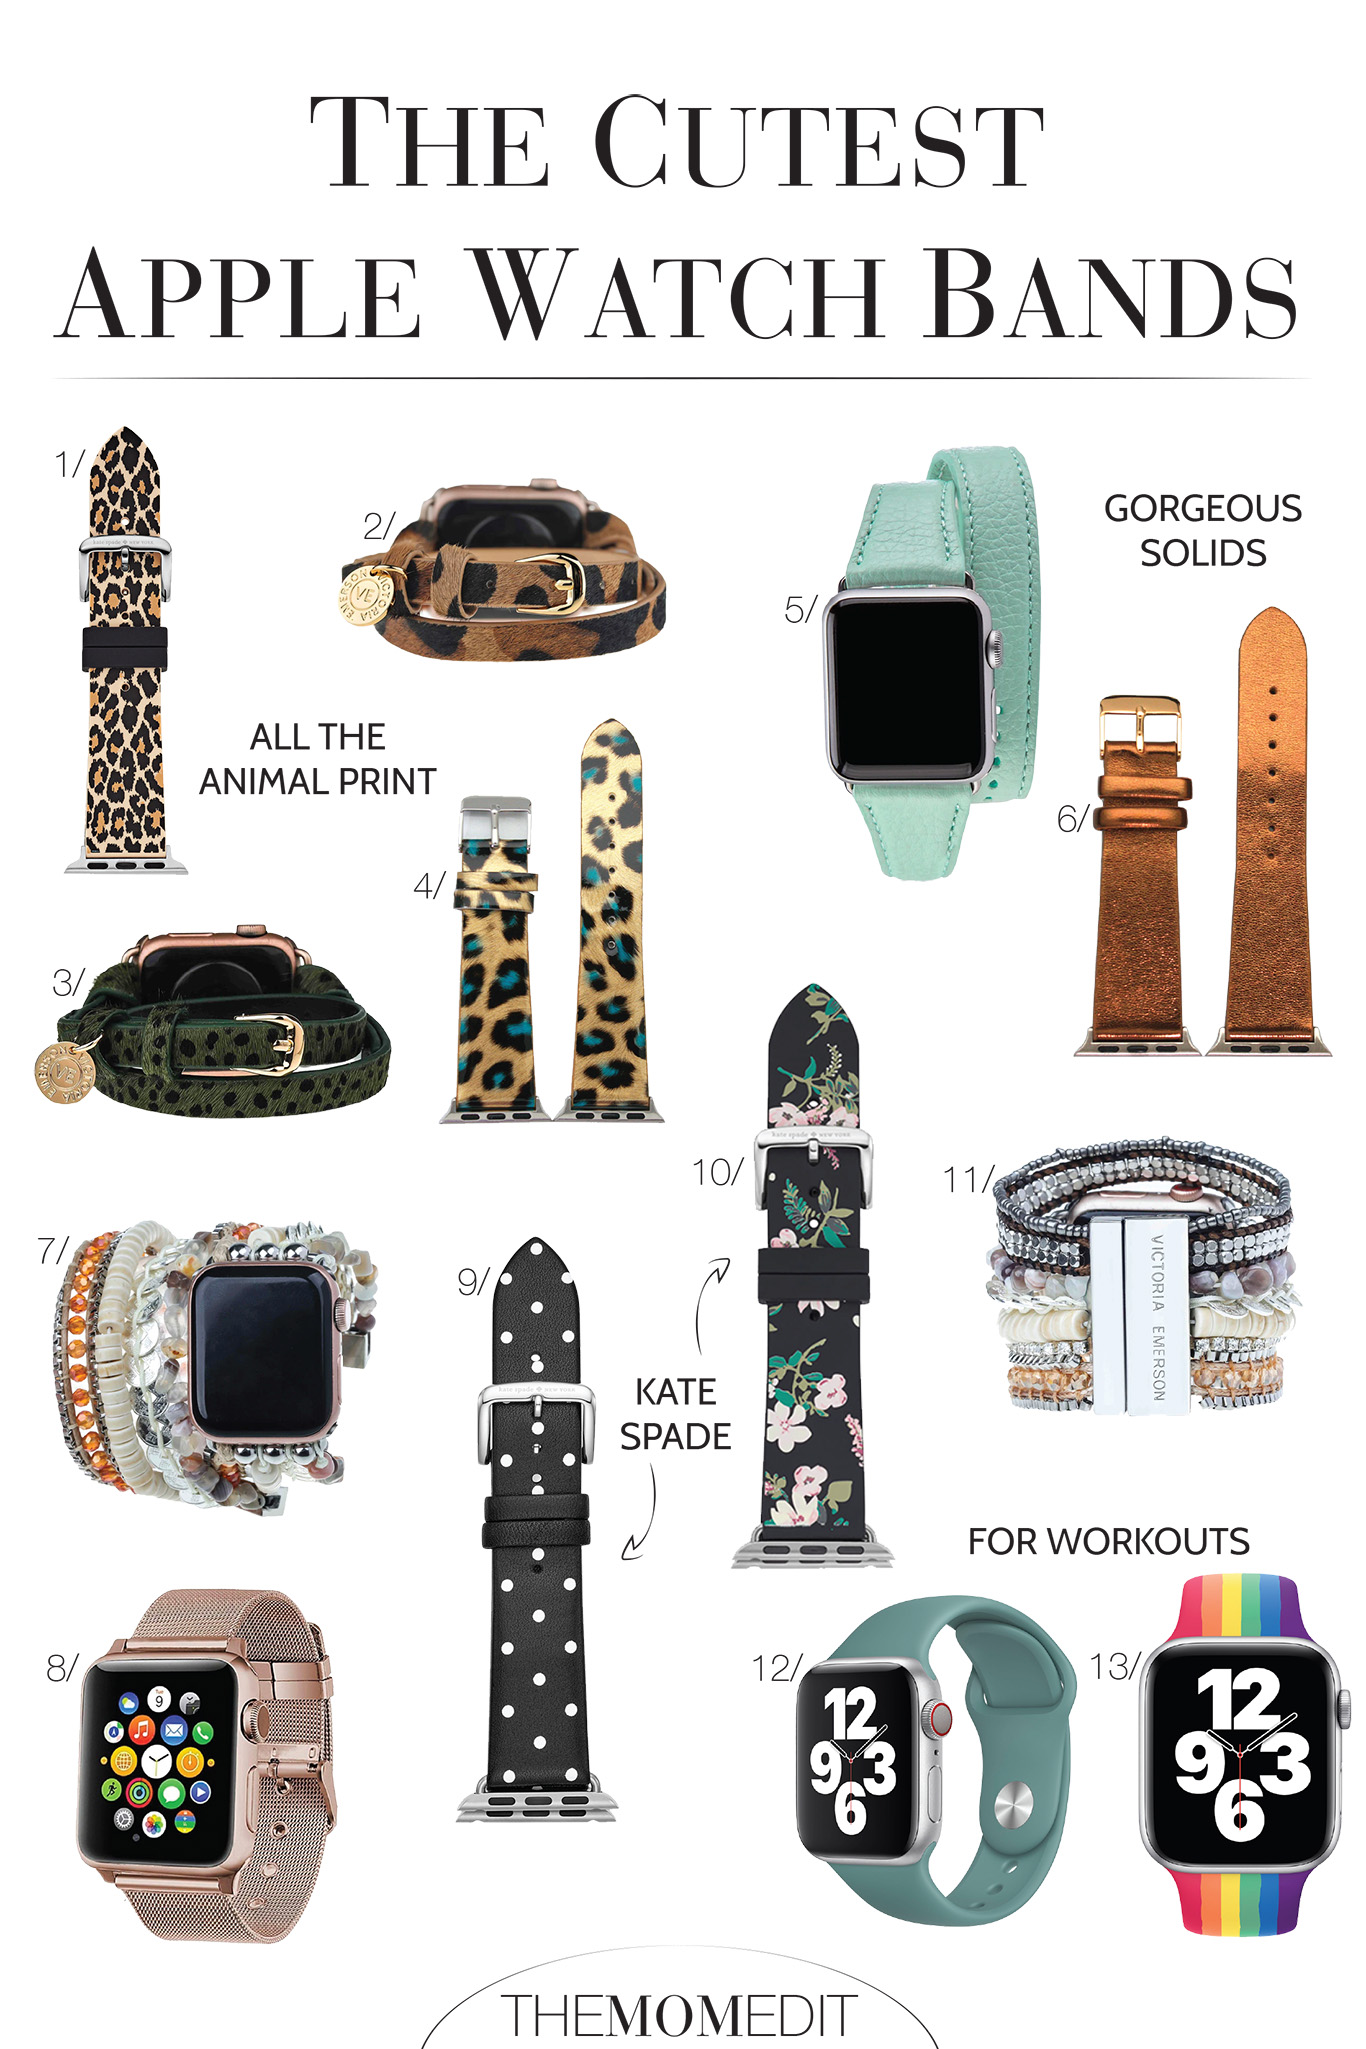 The Apple Watch Pride band 2020 in rainbow? Kate Spade & Victoria Emerson fashion straps that are more like jewelry? We have a roundup you'll love.